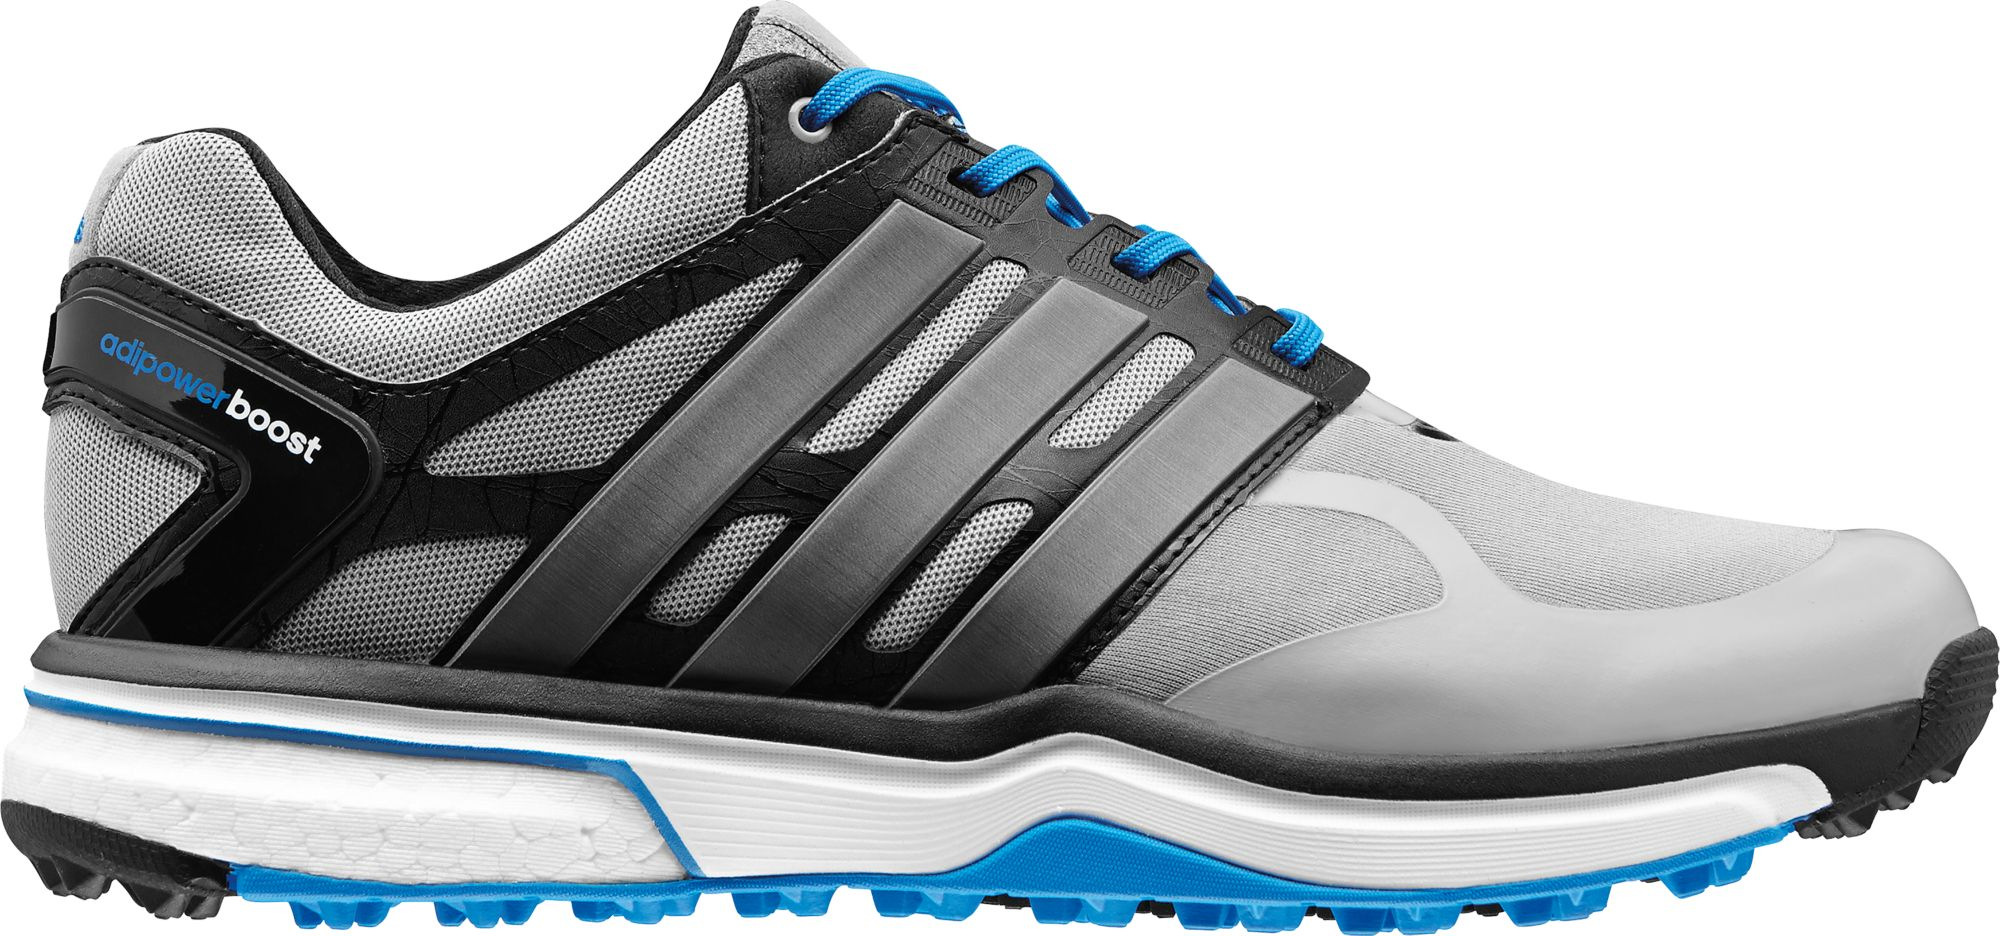 ... adidas sports shoes price list in india 2014 ...